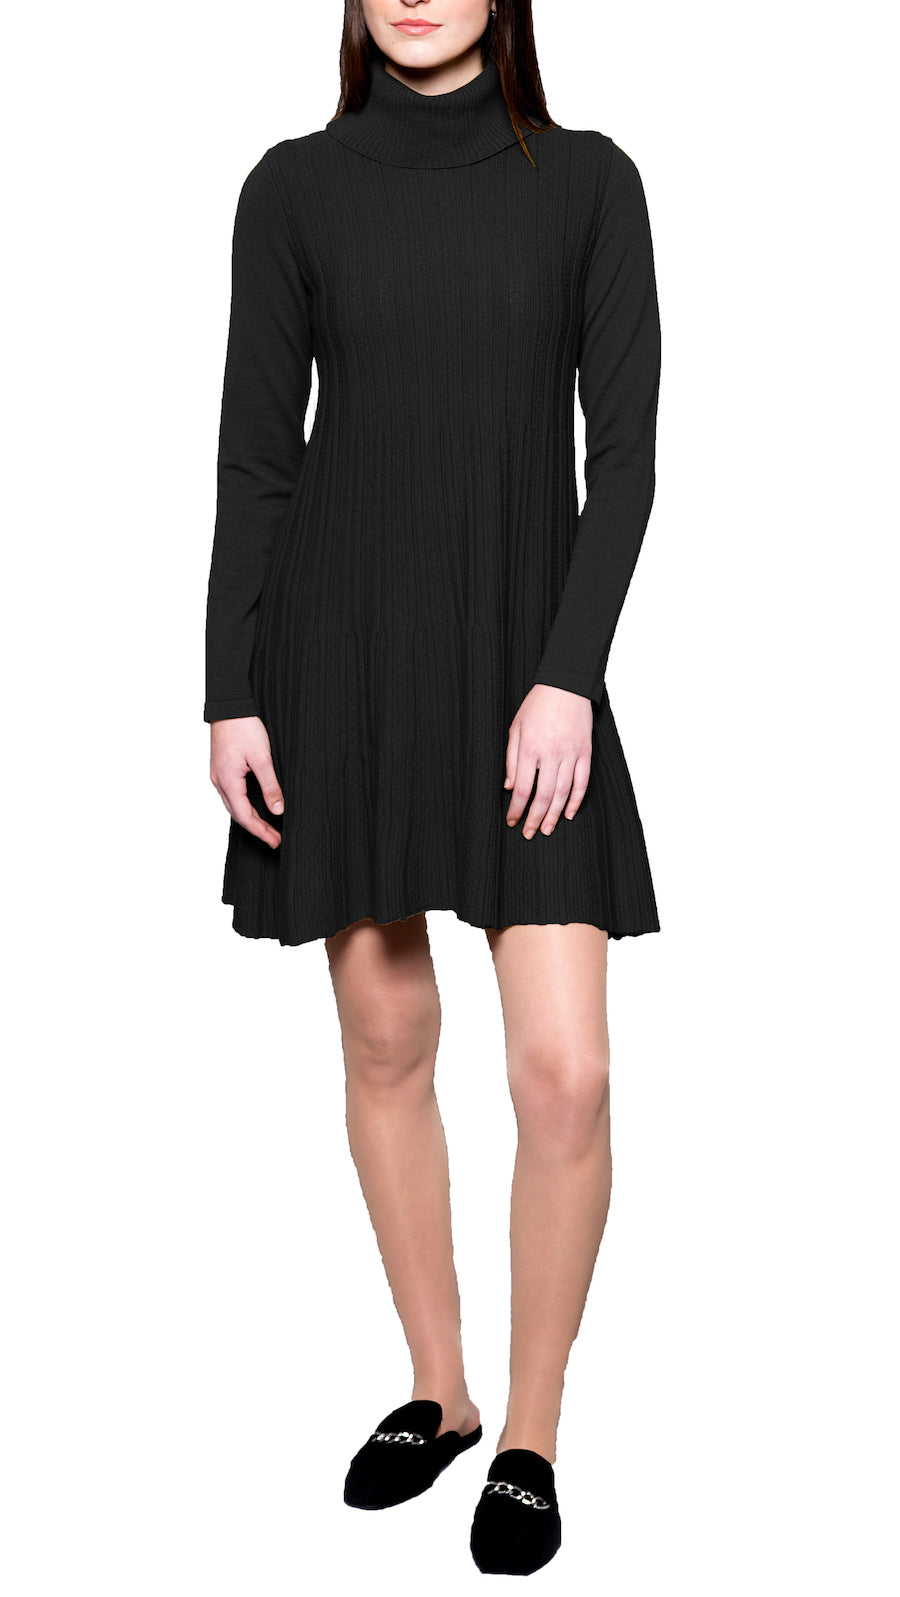 CONTEMPO Charlene knitted turtleneck dress, Black